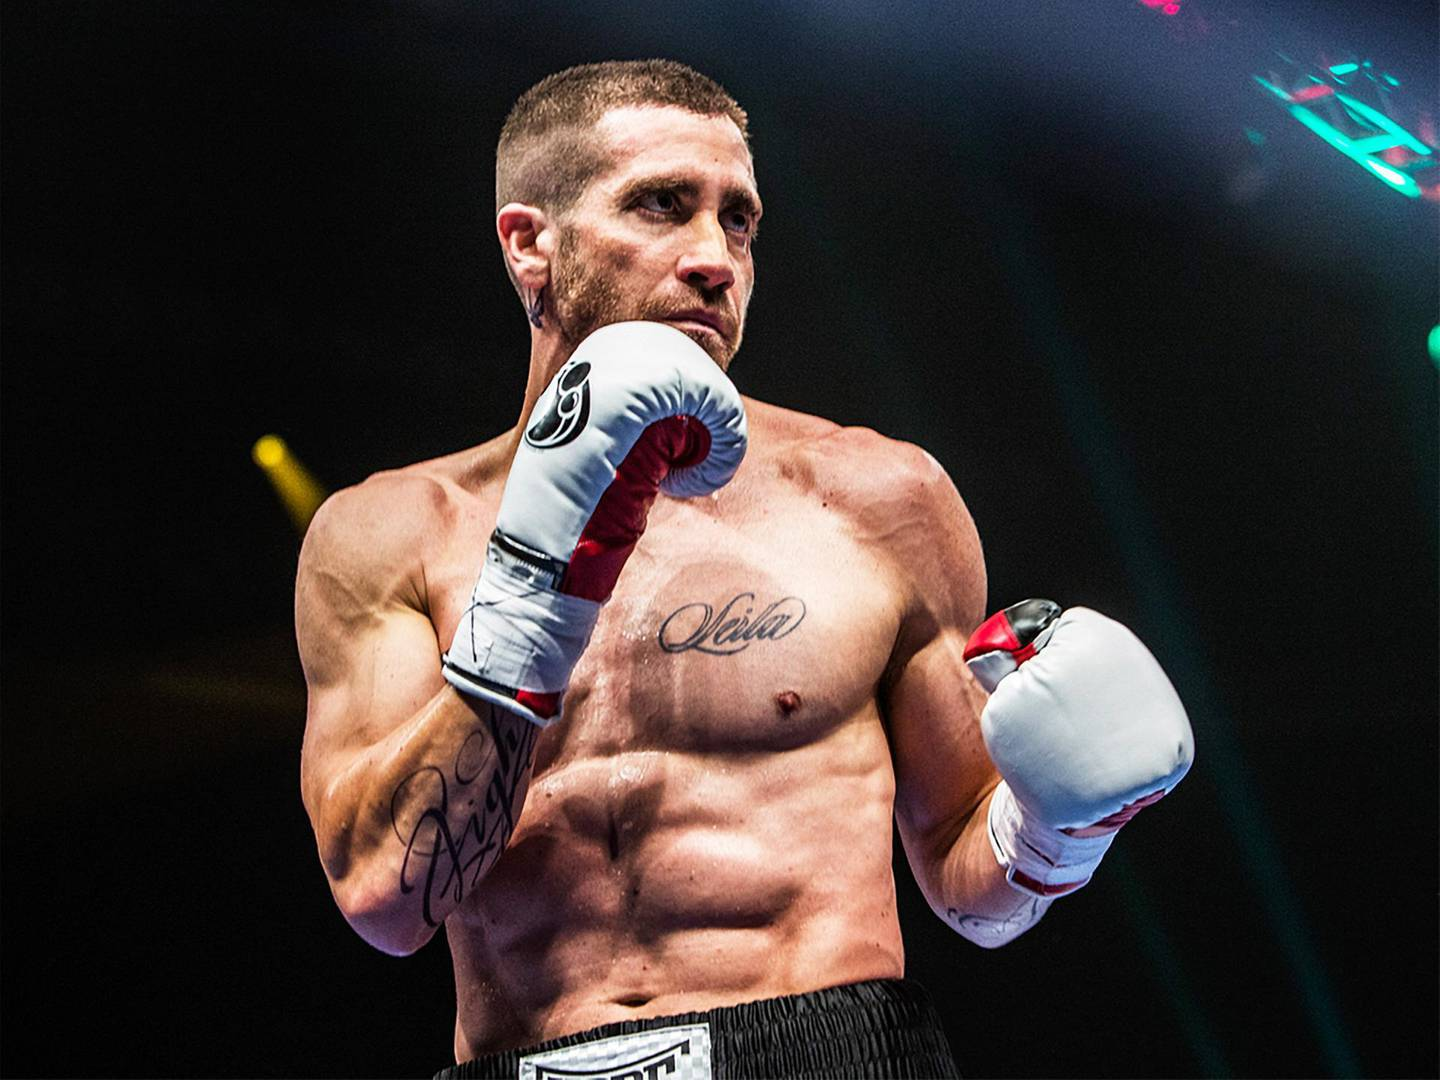 This photo provided by The Weinstein Company shows Jake Gyllenhaal as Billy Hope, in the film, Southpaw - The movie releases in the U.S. on July 24, 2015.  (Scott Garfield/The Weinstein Company via AP) *** Local Caption ***  P.45-Southpaw.jpg